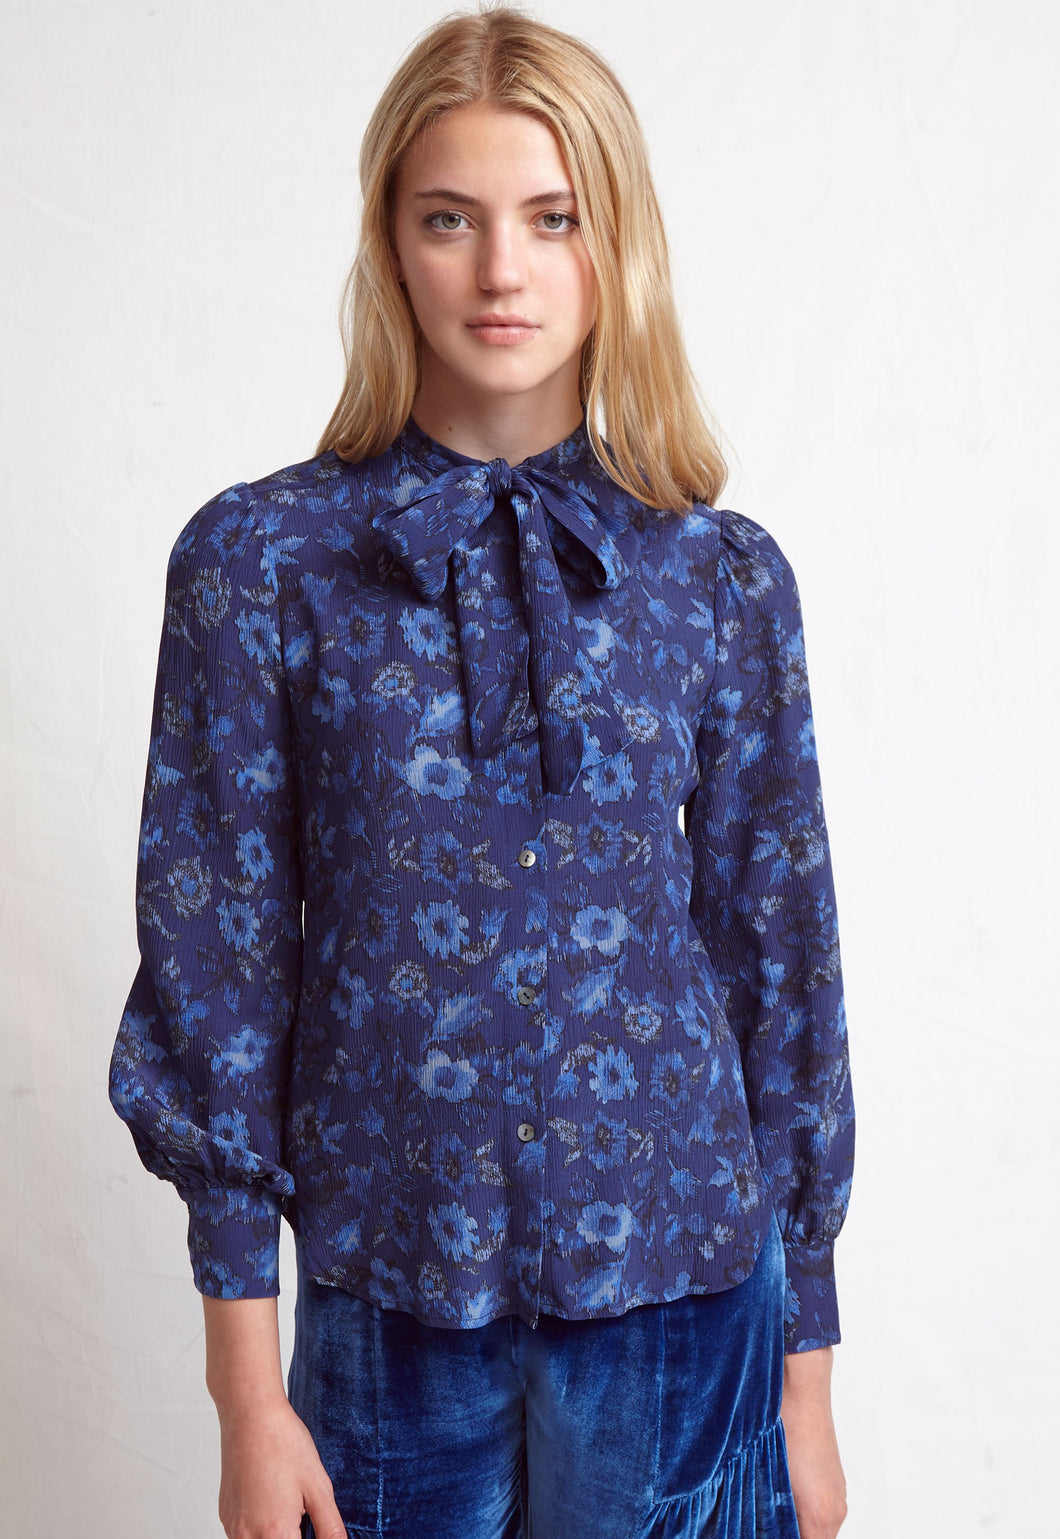 WARM - Wonderful Blouse